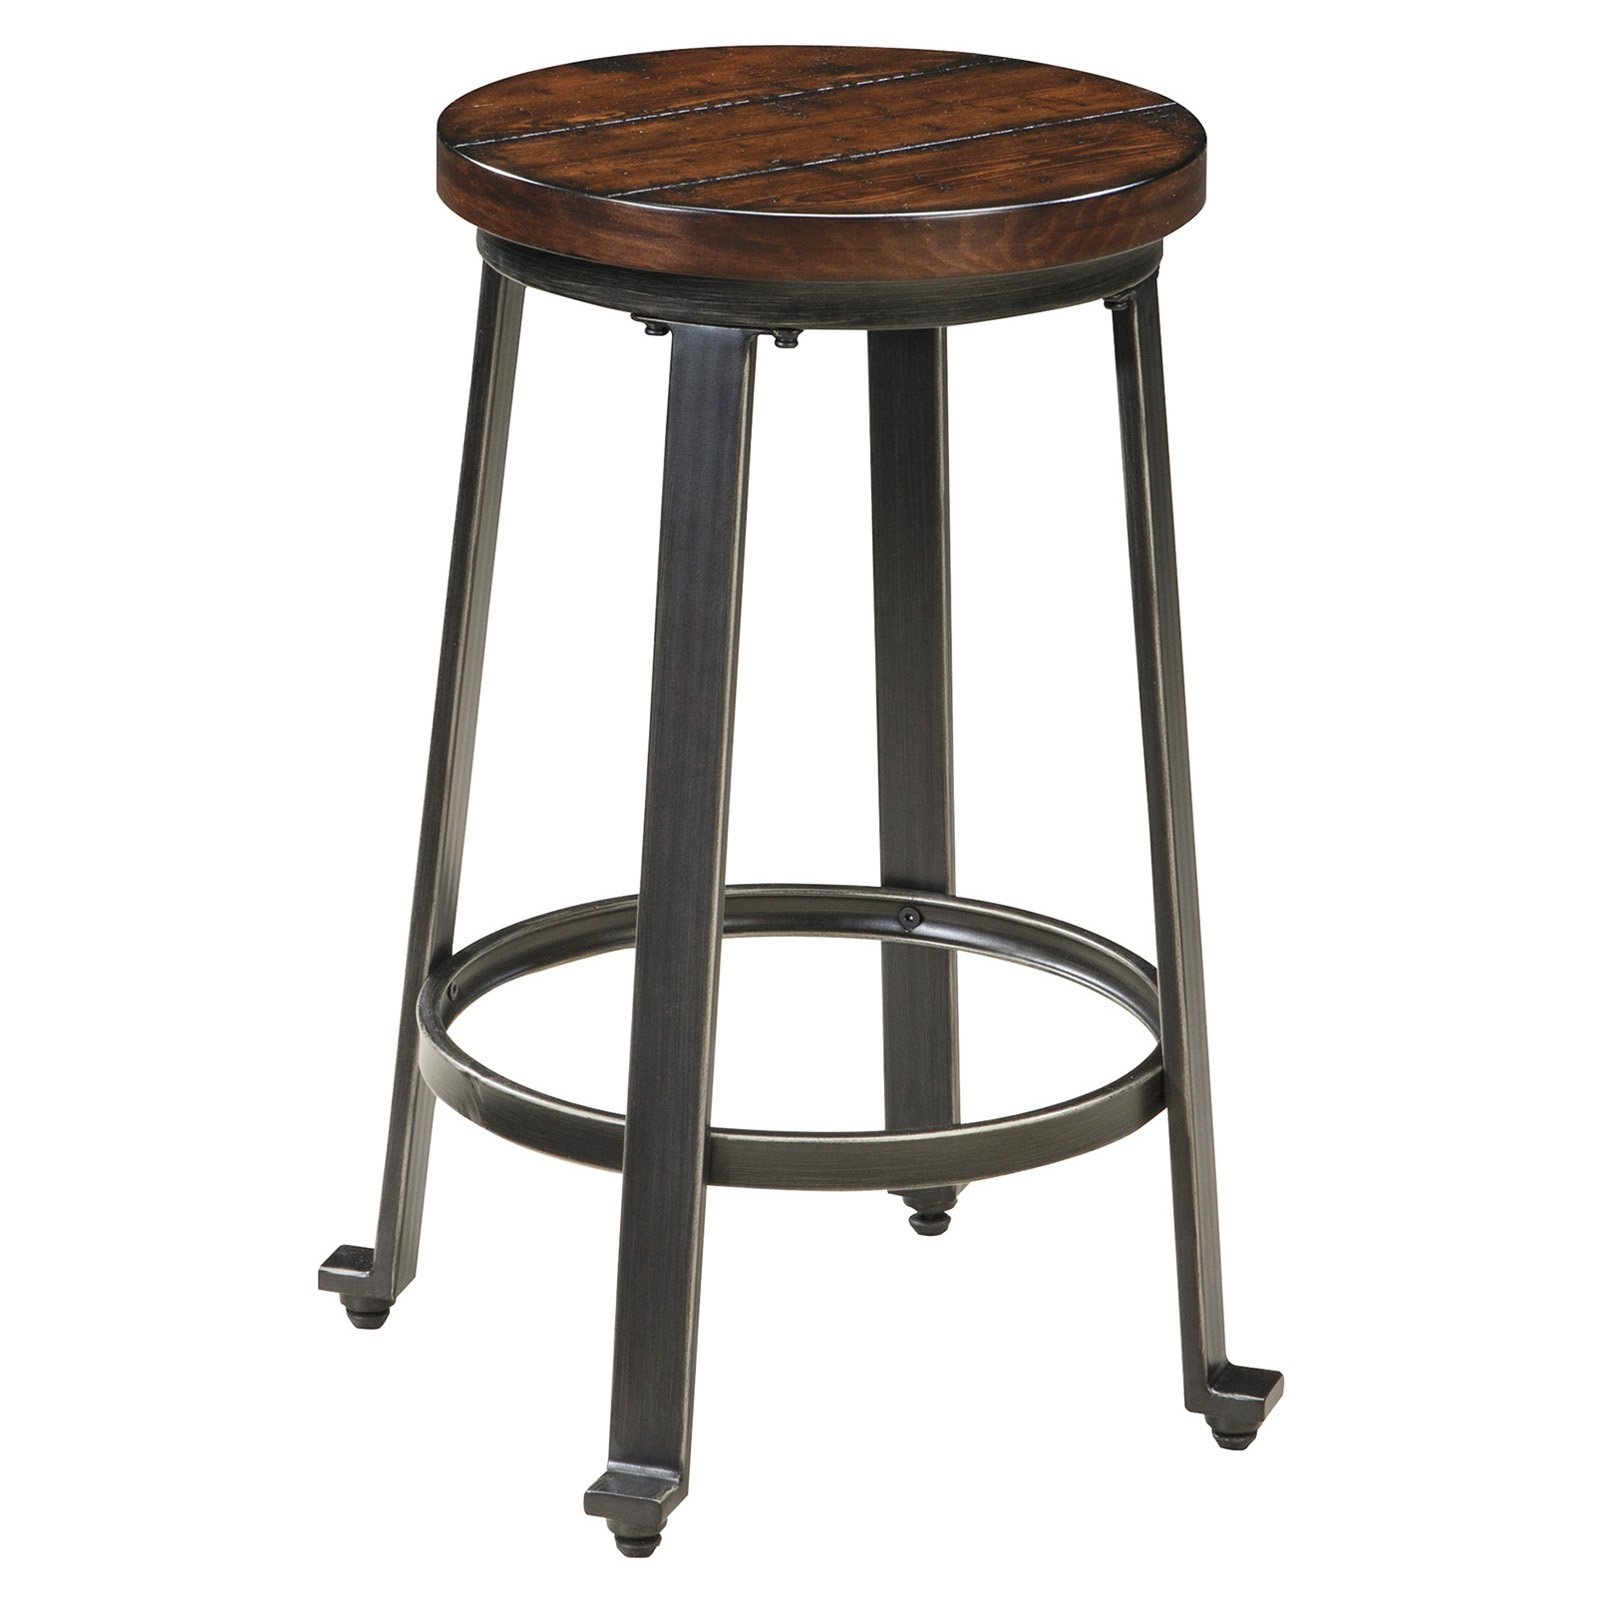 table bar set small style counter stools chairs pub stool height of dining new rustic